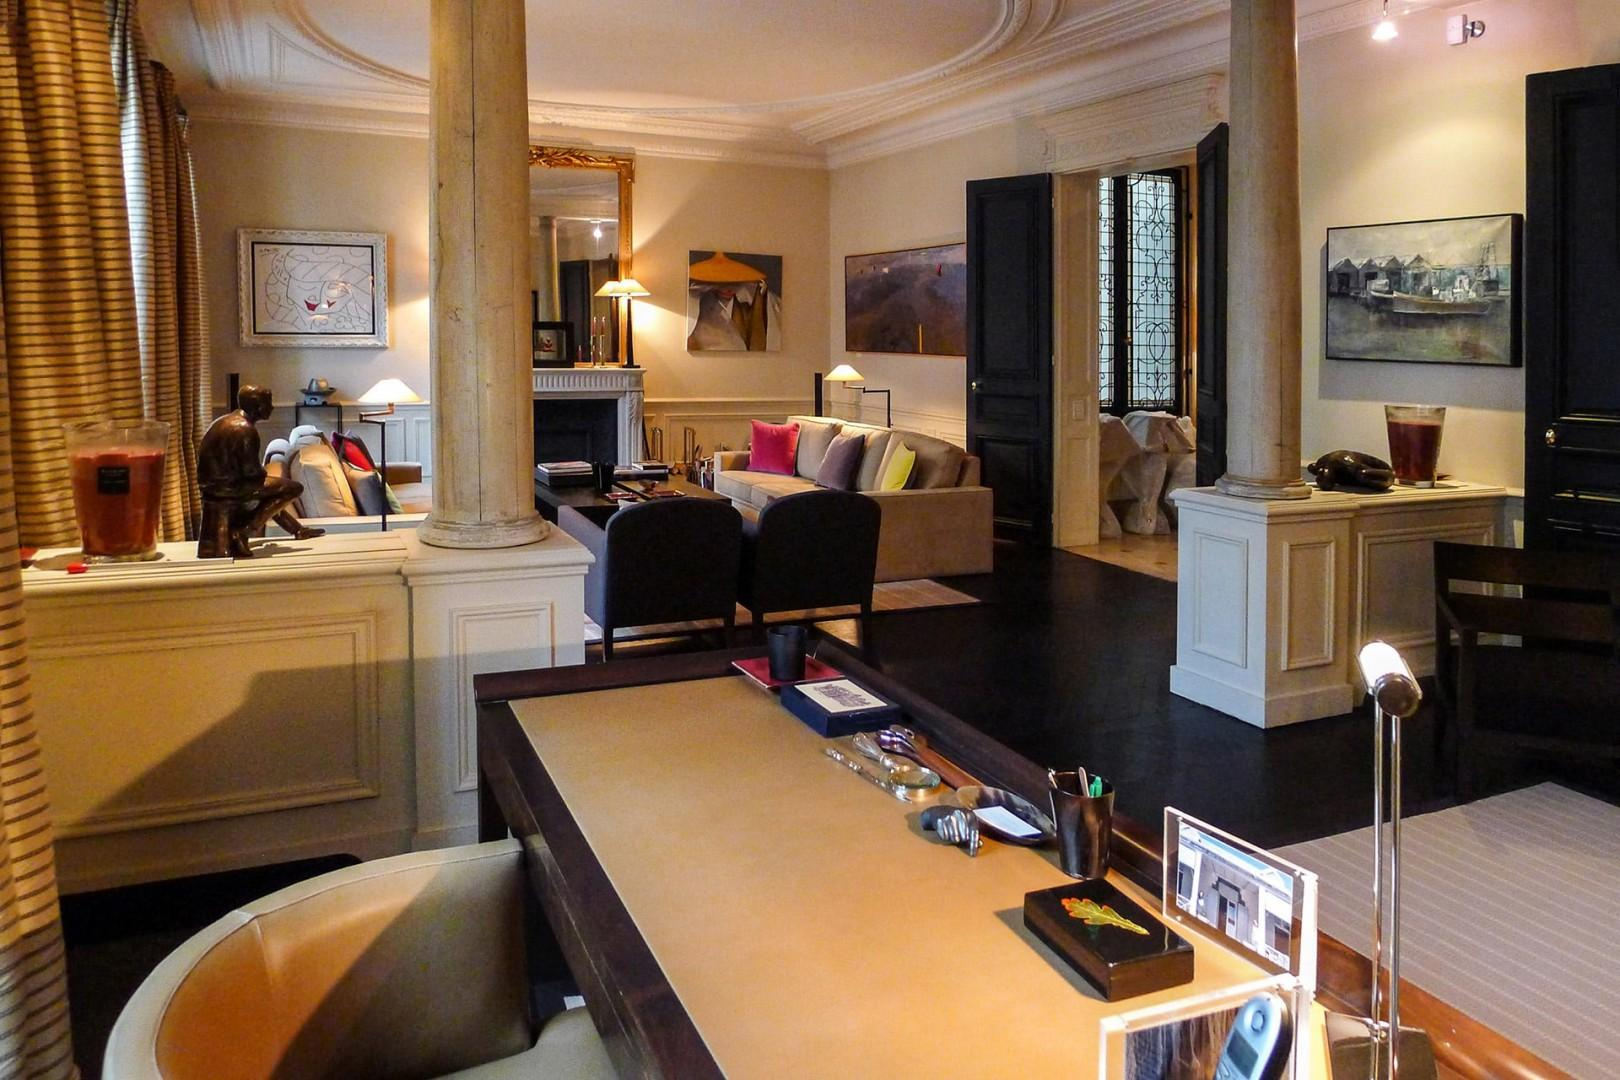 The study features a beautiful dark wood desk and leather chair.